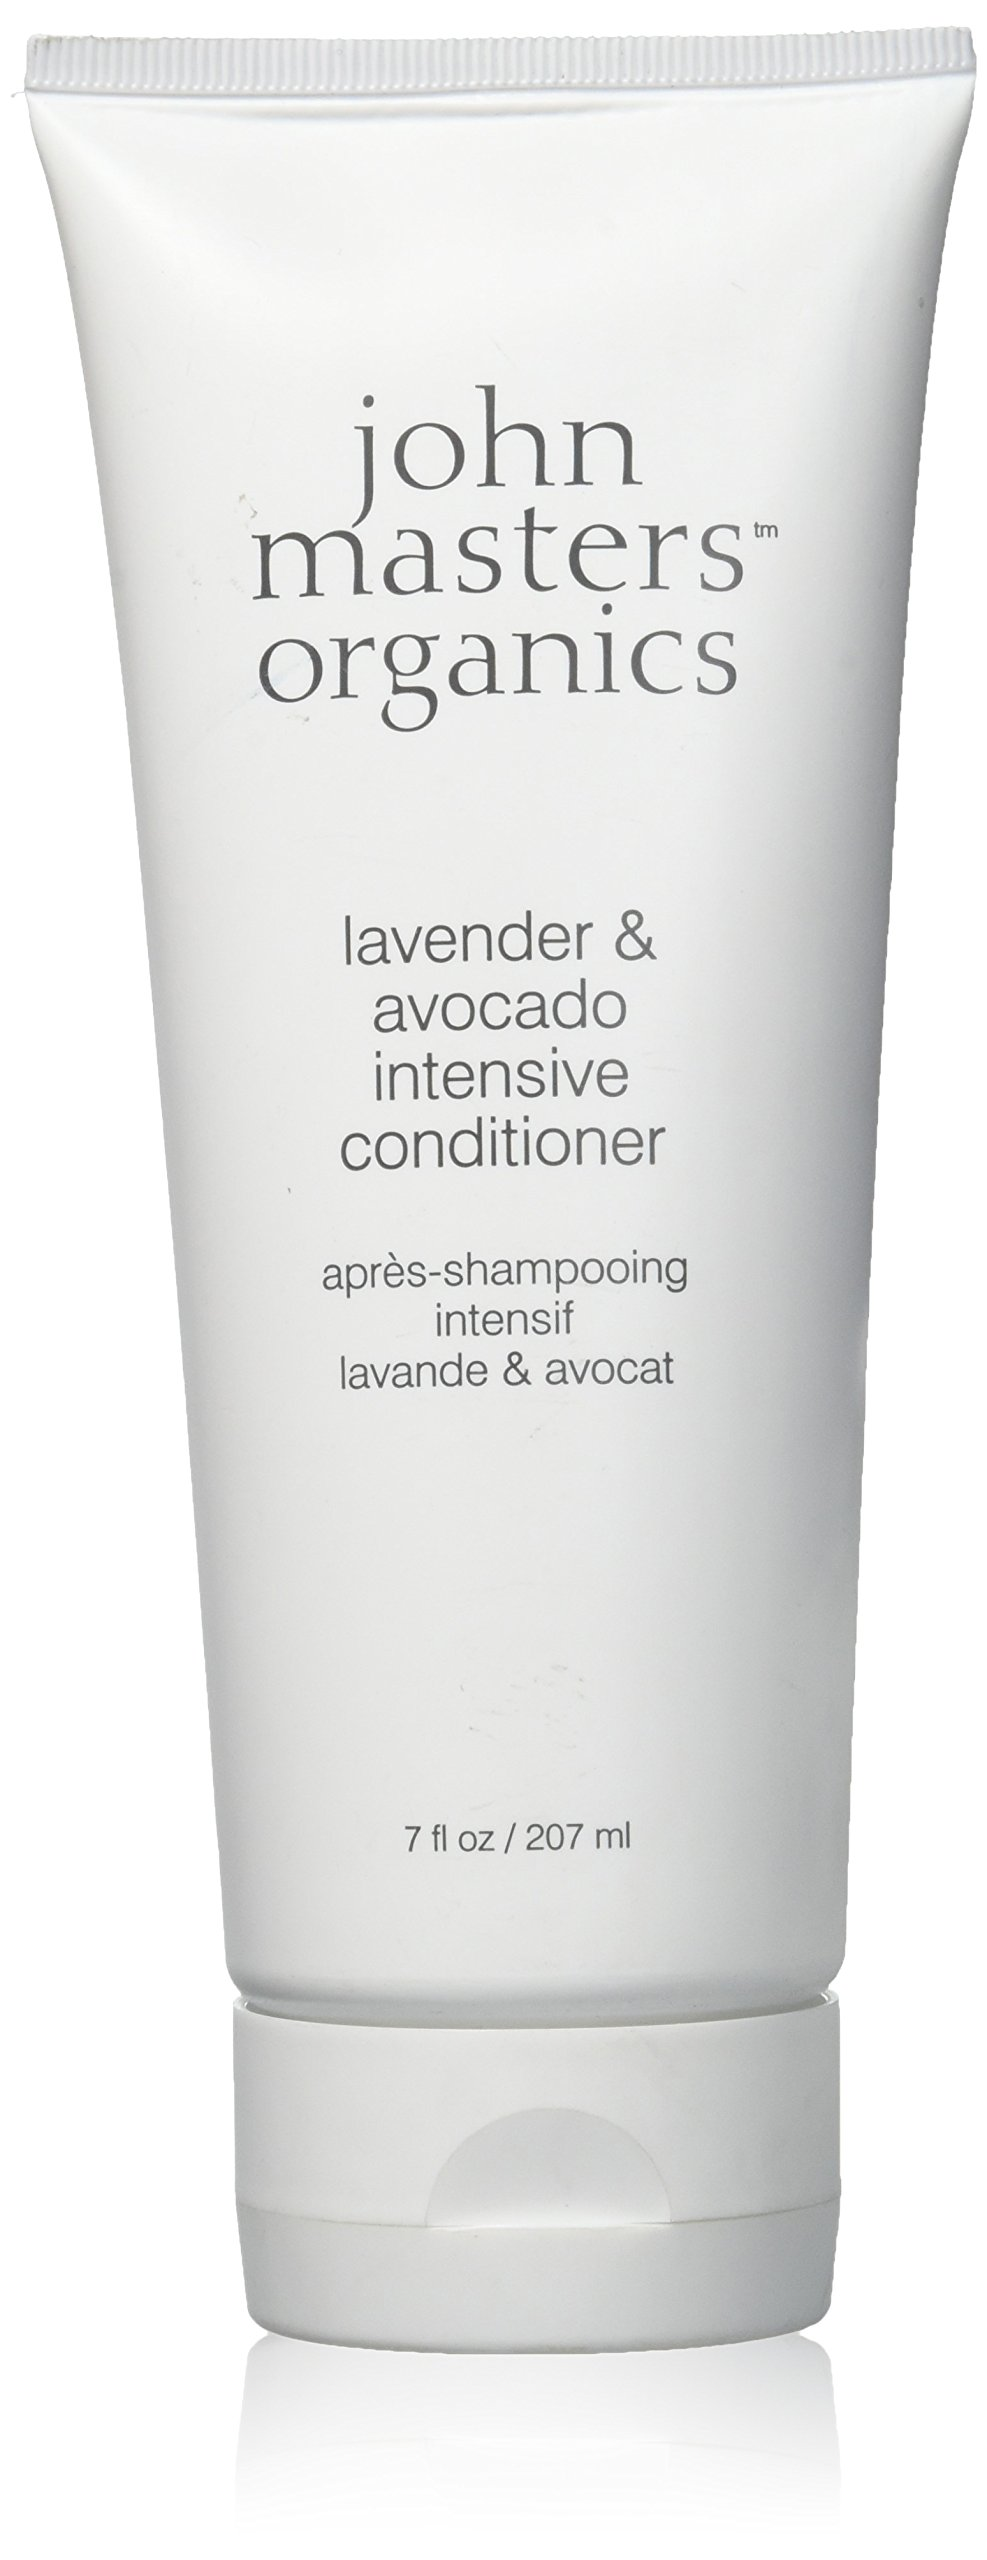 John Masters Organics Lavender & Avocado Intensive Conditioner 7 oz